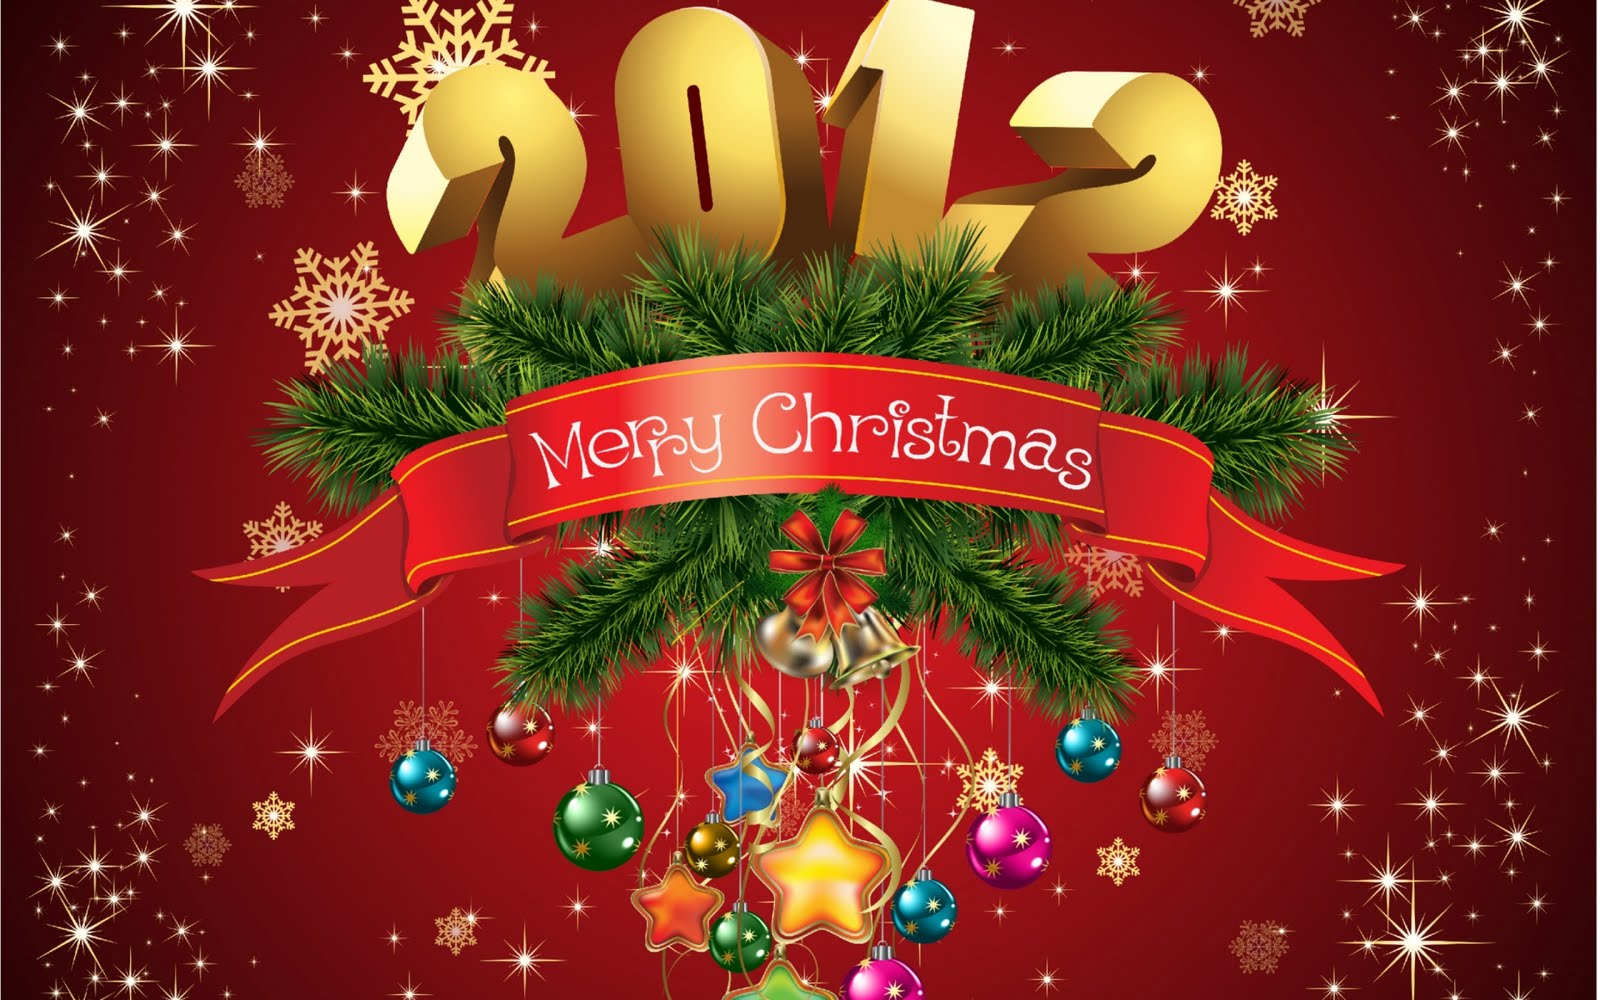 Feliz Navidad - Merry Christmas - Happy New Year 2012